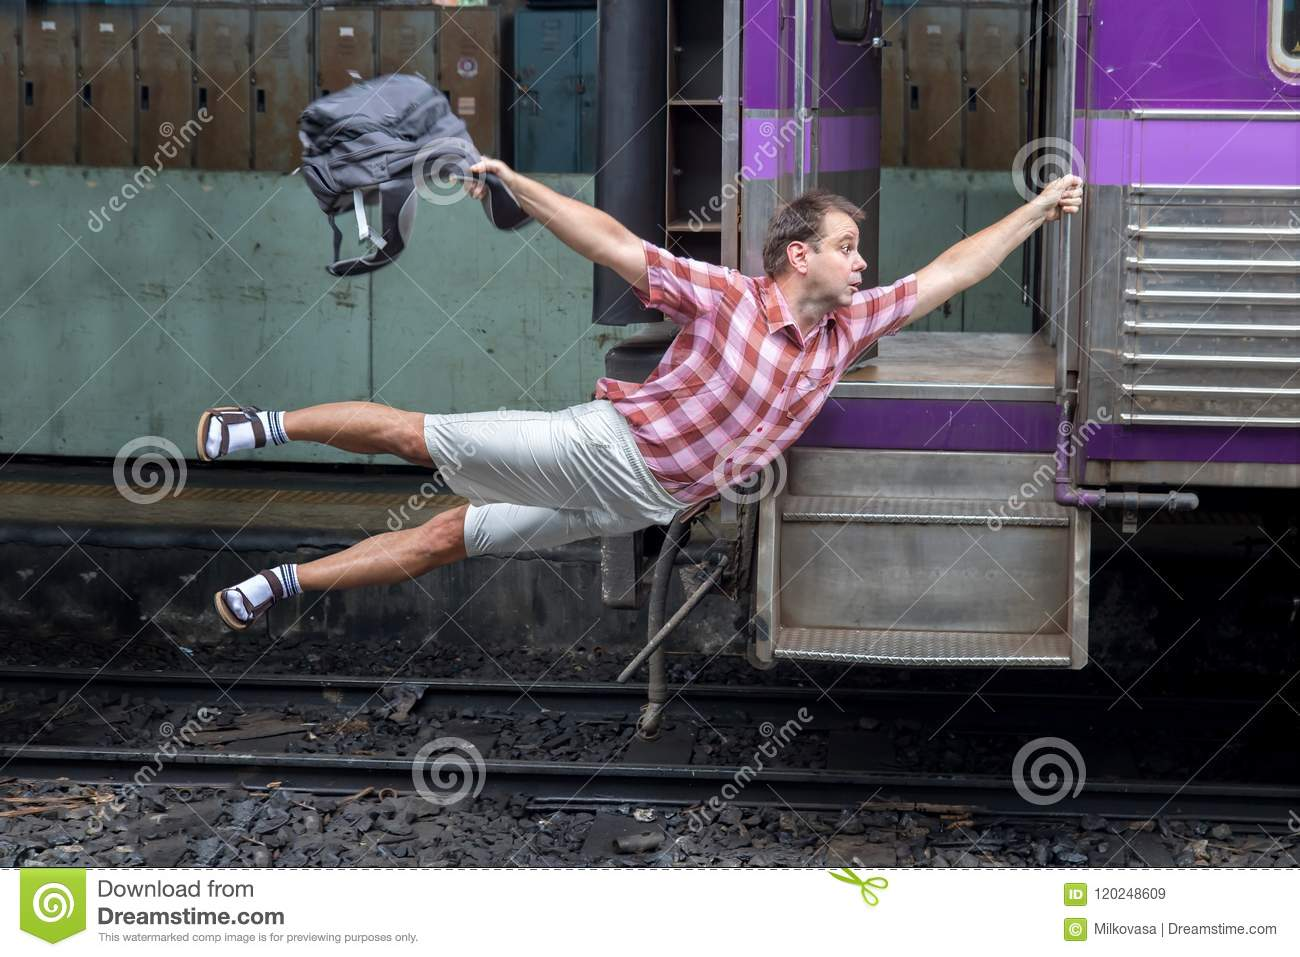 Download Tourist Holding A Moving Train Stock Image - Image of hold, minute: 120248609